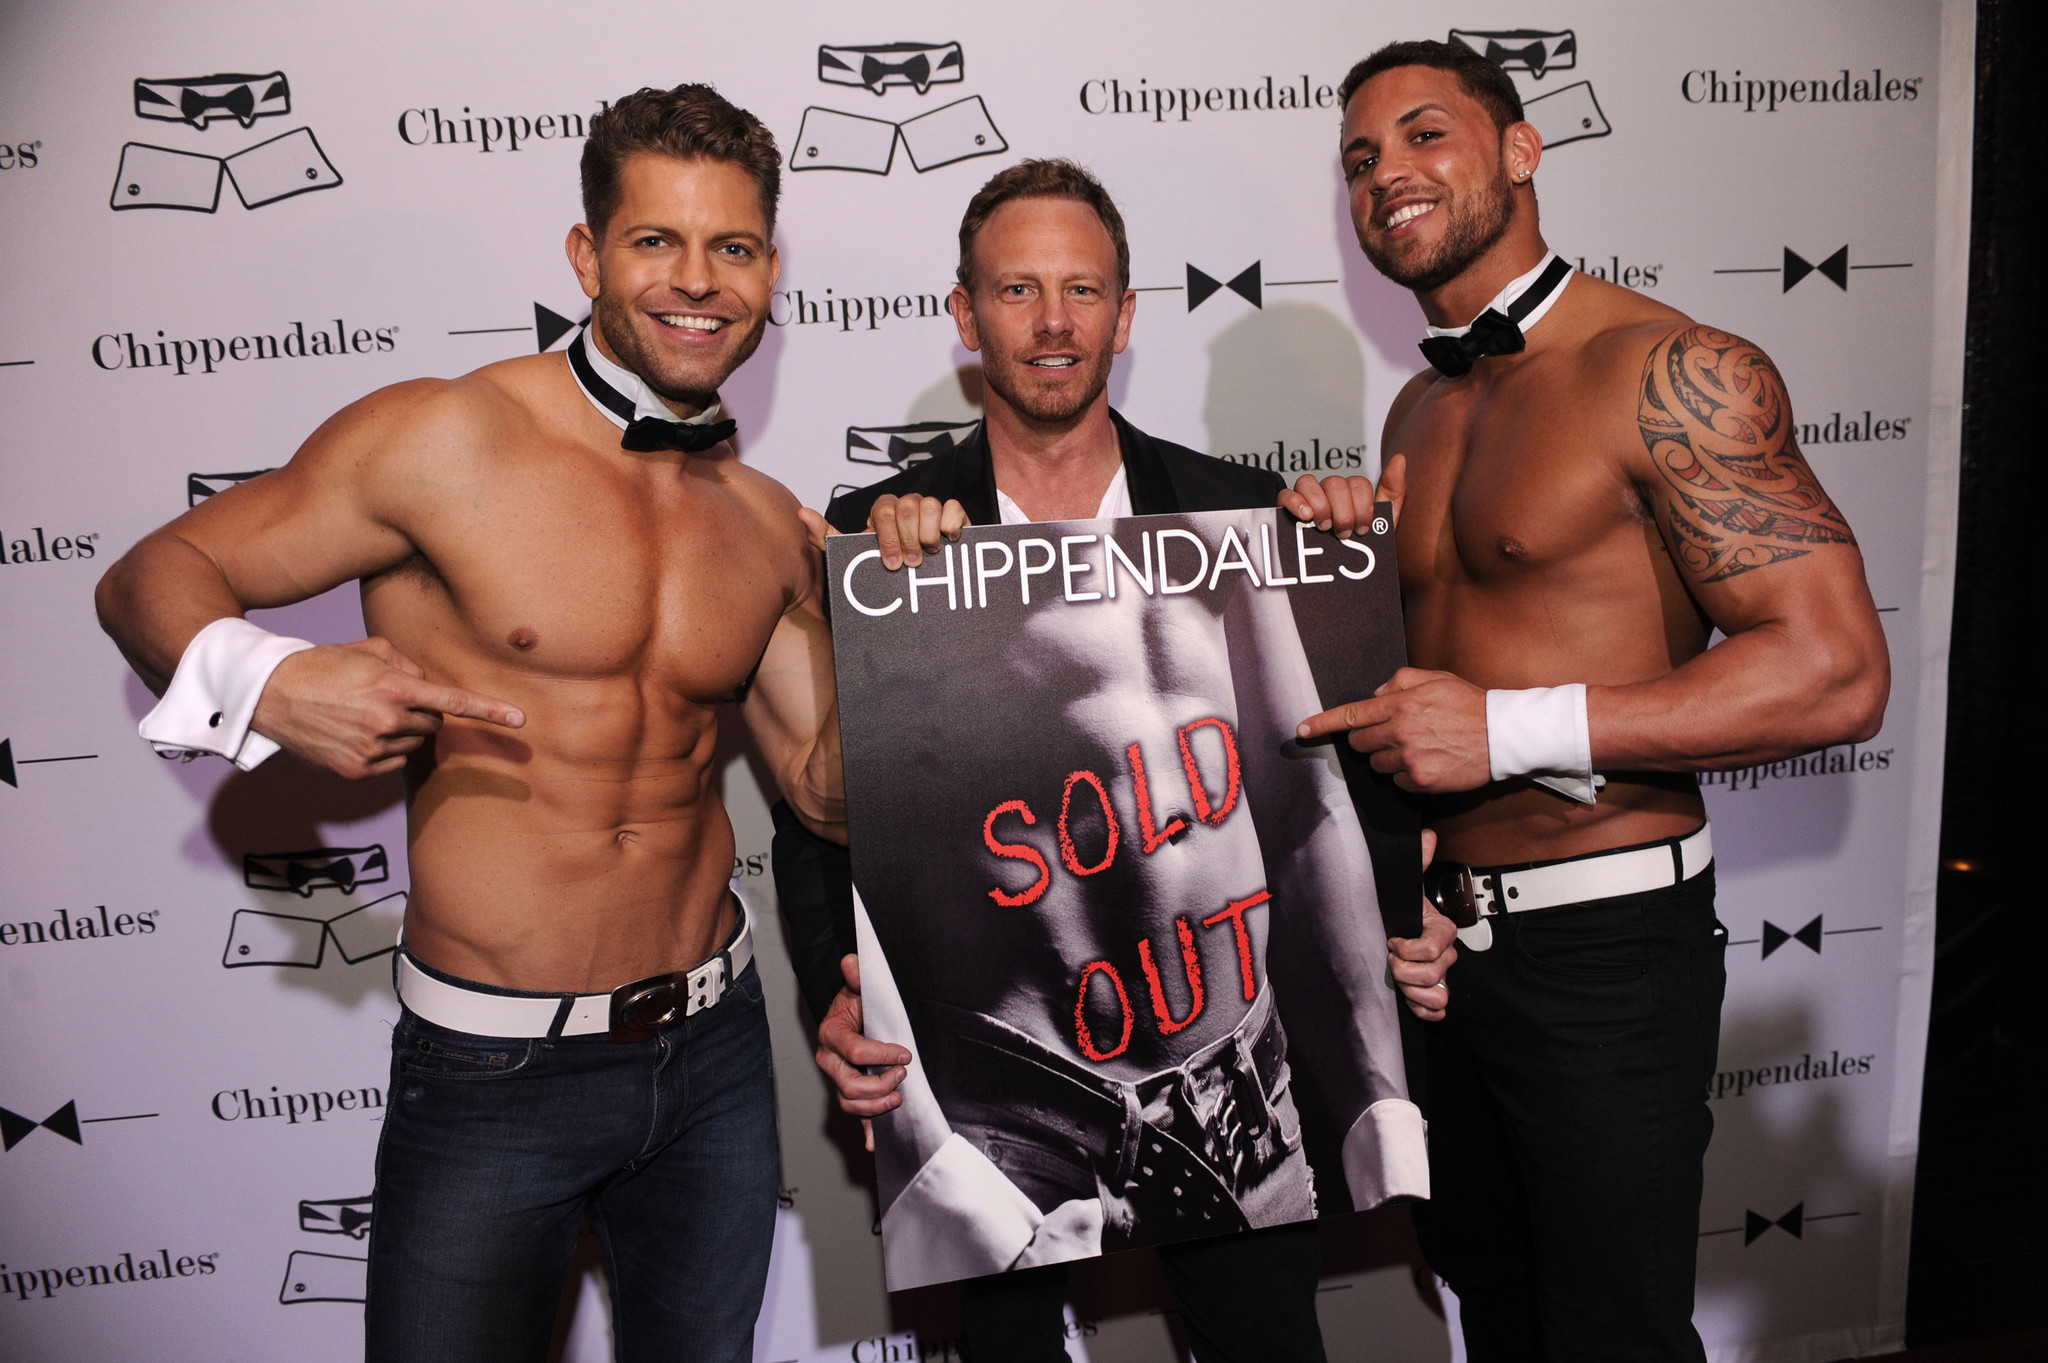 Chippendales open in Miami Beach - Jayme Vaughn, Ian Ziering and Matt Marshall